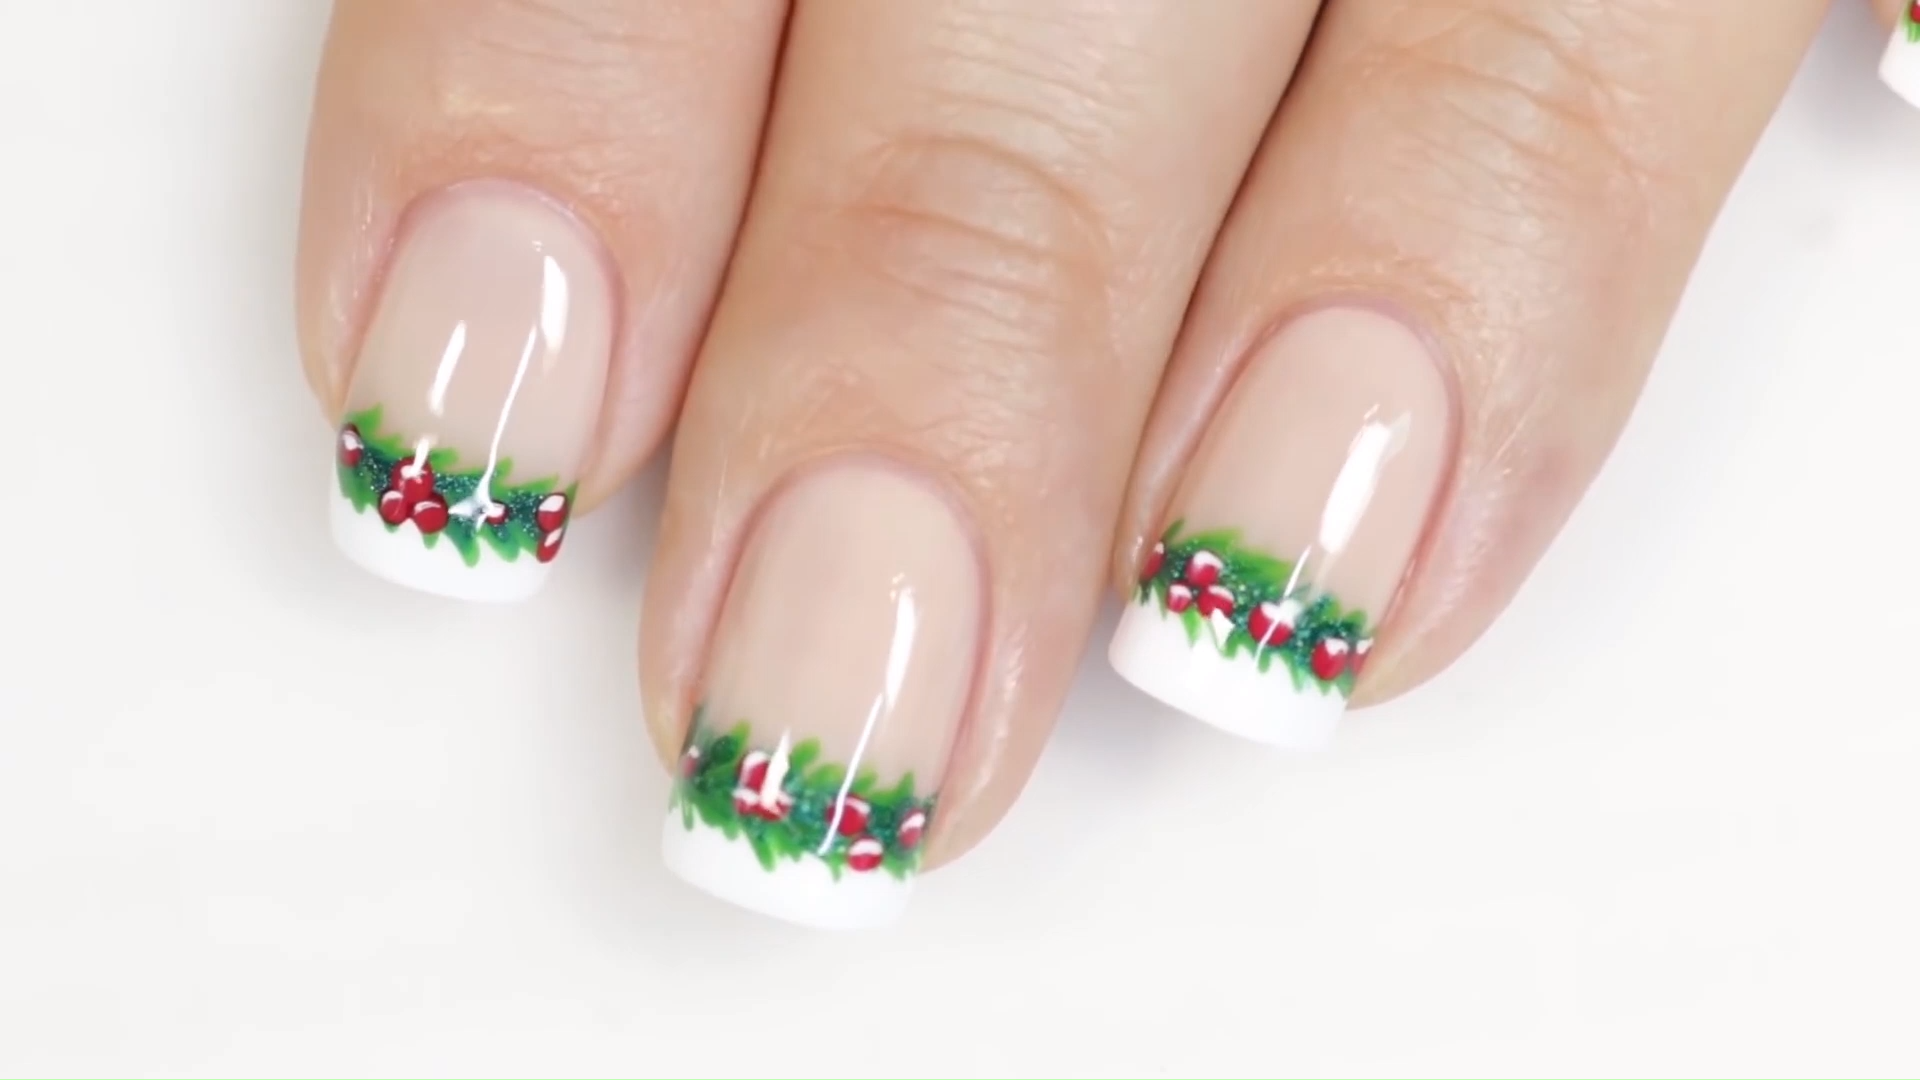 DIY the christmas nails by yourself